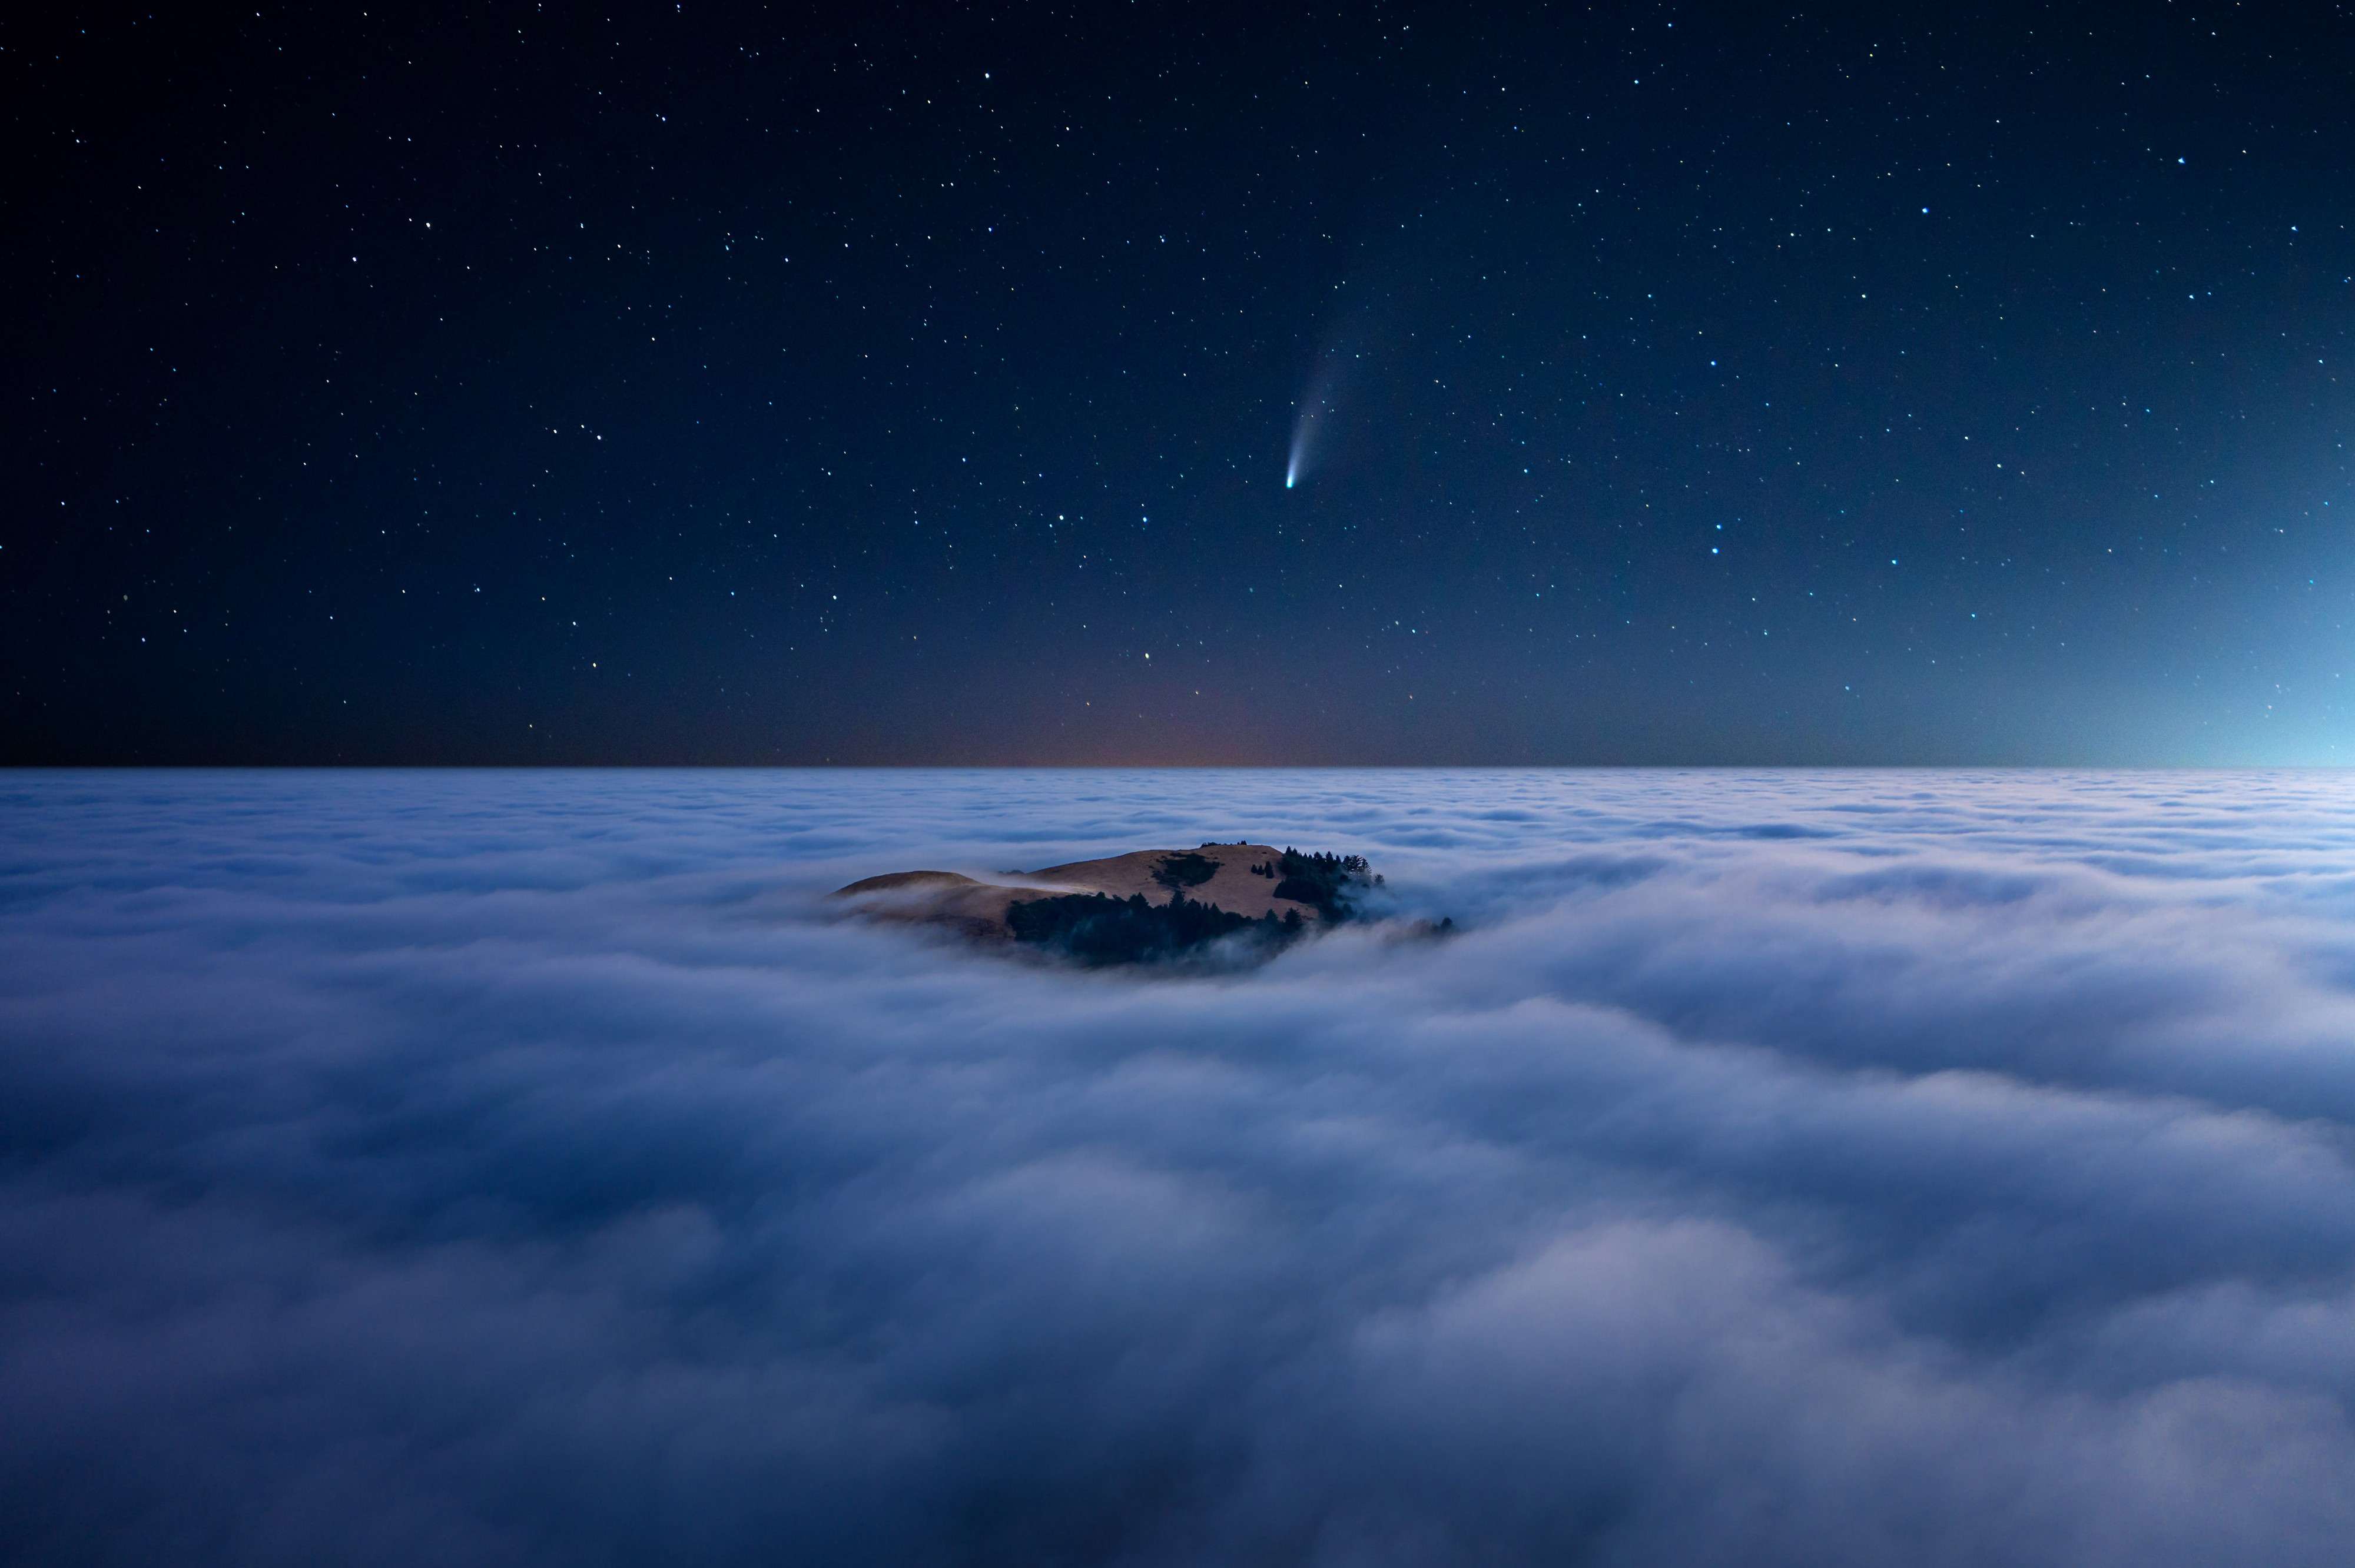 A comet or shooting star appears clearly in the sky above the clouds, which are broken in one spot showing beautiful earth